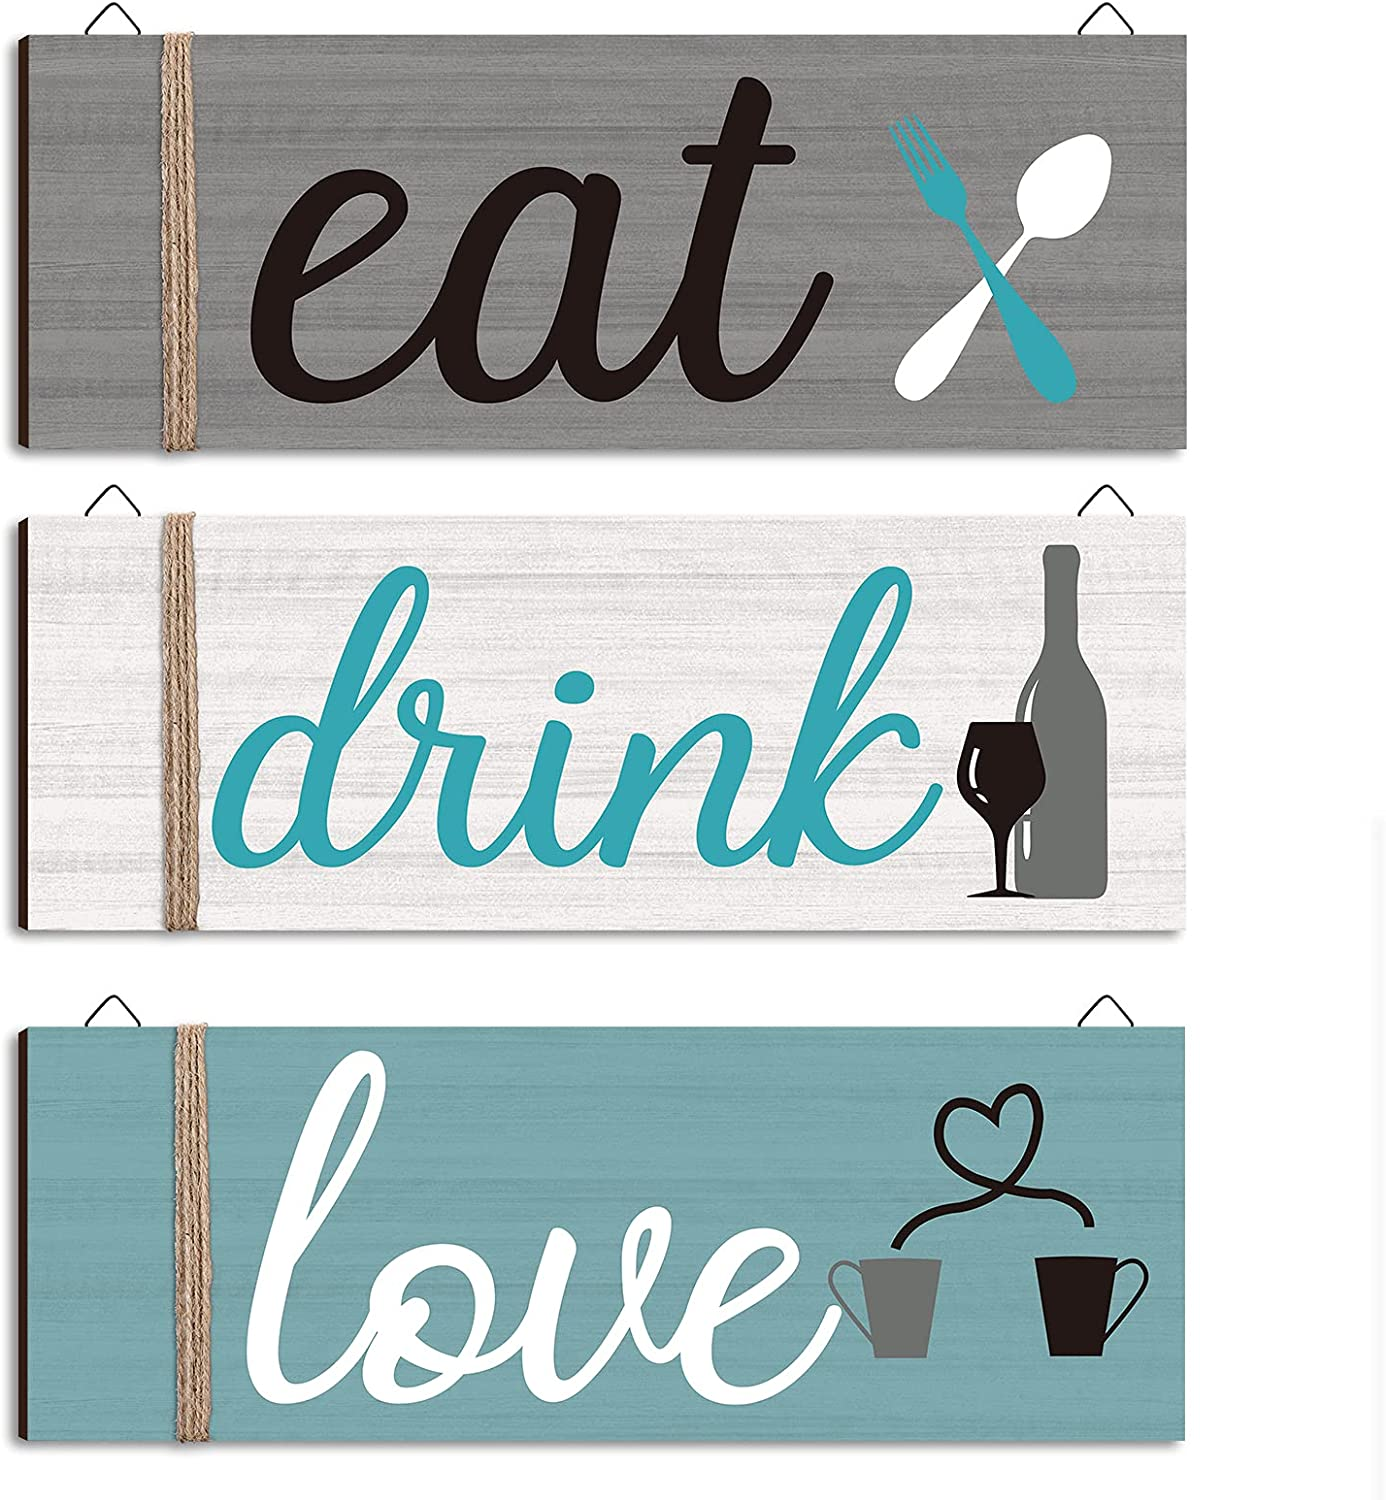 Jetec 3 Pieces Wood Home Sign Rustic Wooden Kitchen Wall Decor Eat Drink Love Wood Sign with Hanging Hole for Home Kitchen Dining Living Room Bar Cafe Decoration (Fresh Color)